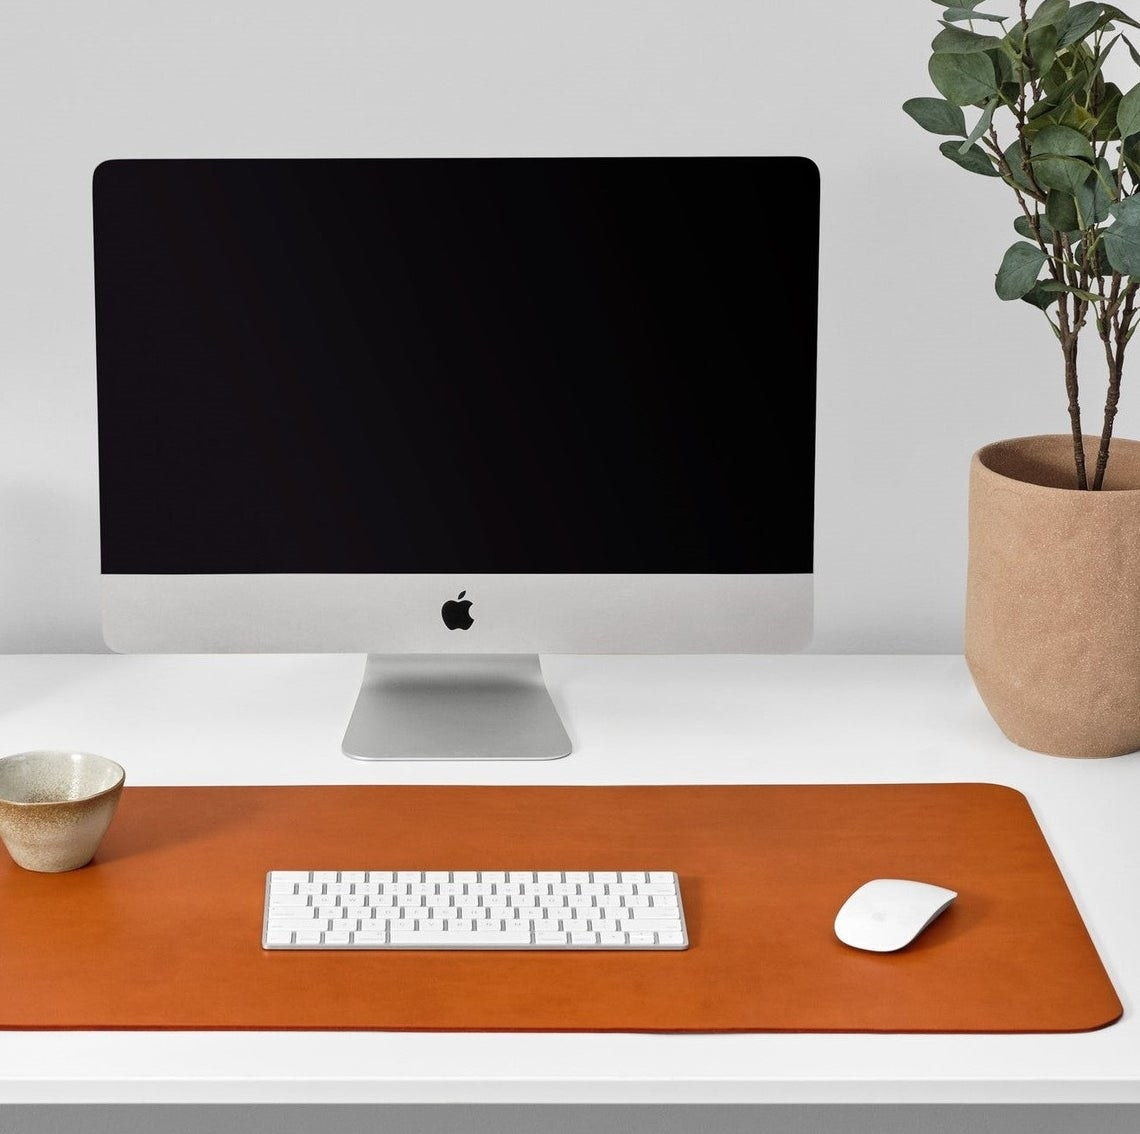 A keyboard, mouse, and bowl on top of the leather desk mat